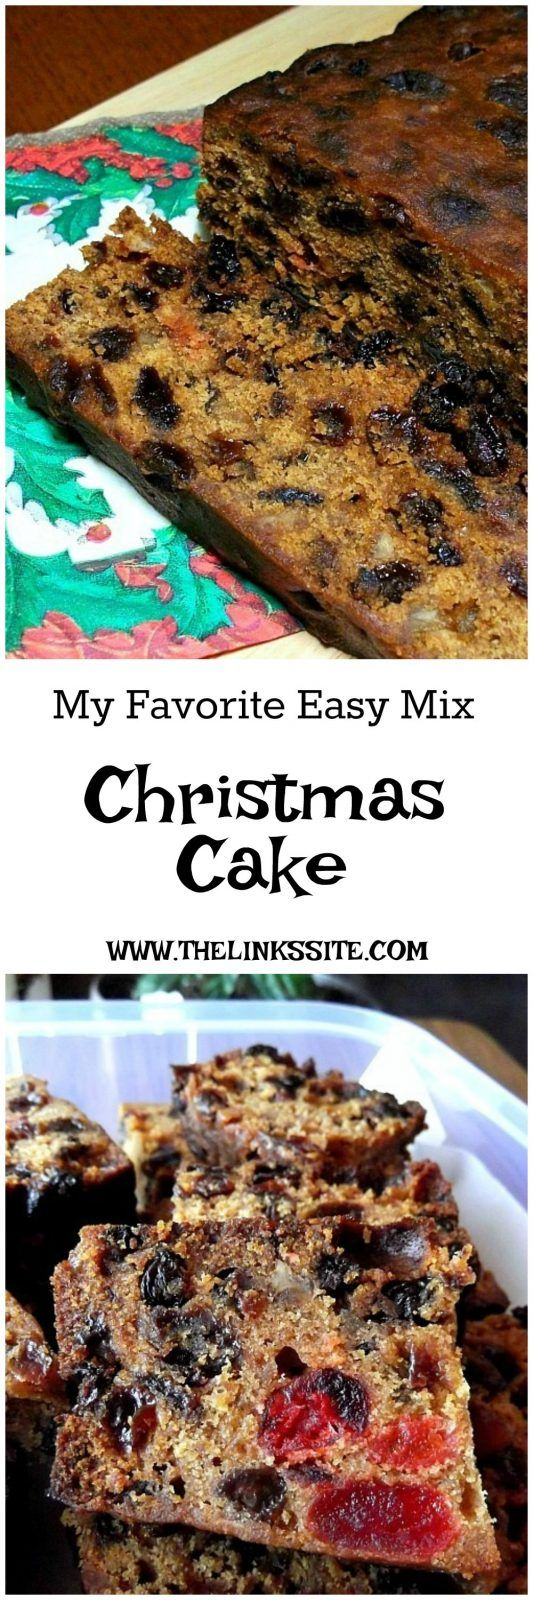 If you love having a traditional fruit cake for Christmas you are going to love this easy Christmas Cake recipe! thelinkssite.com